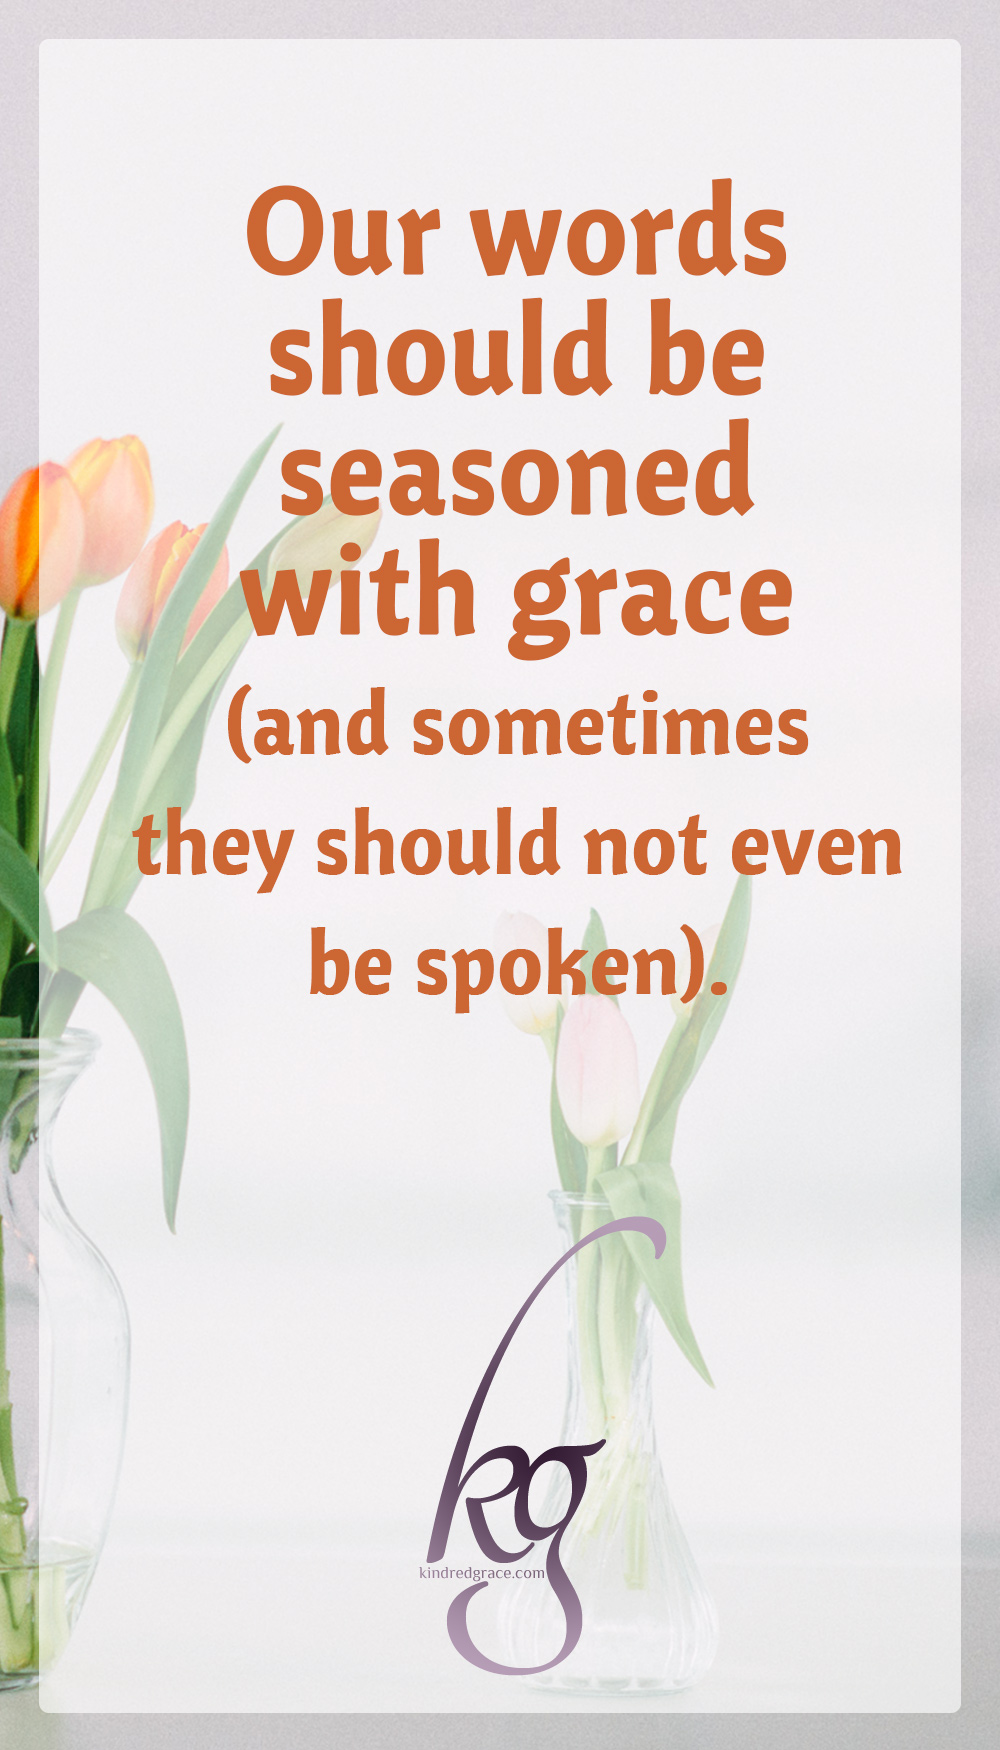 Our words should be seasoned with grace and sometimes they should not even be spoken. via @KindredGrace